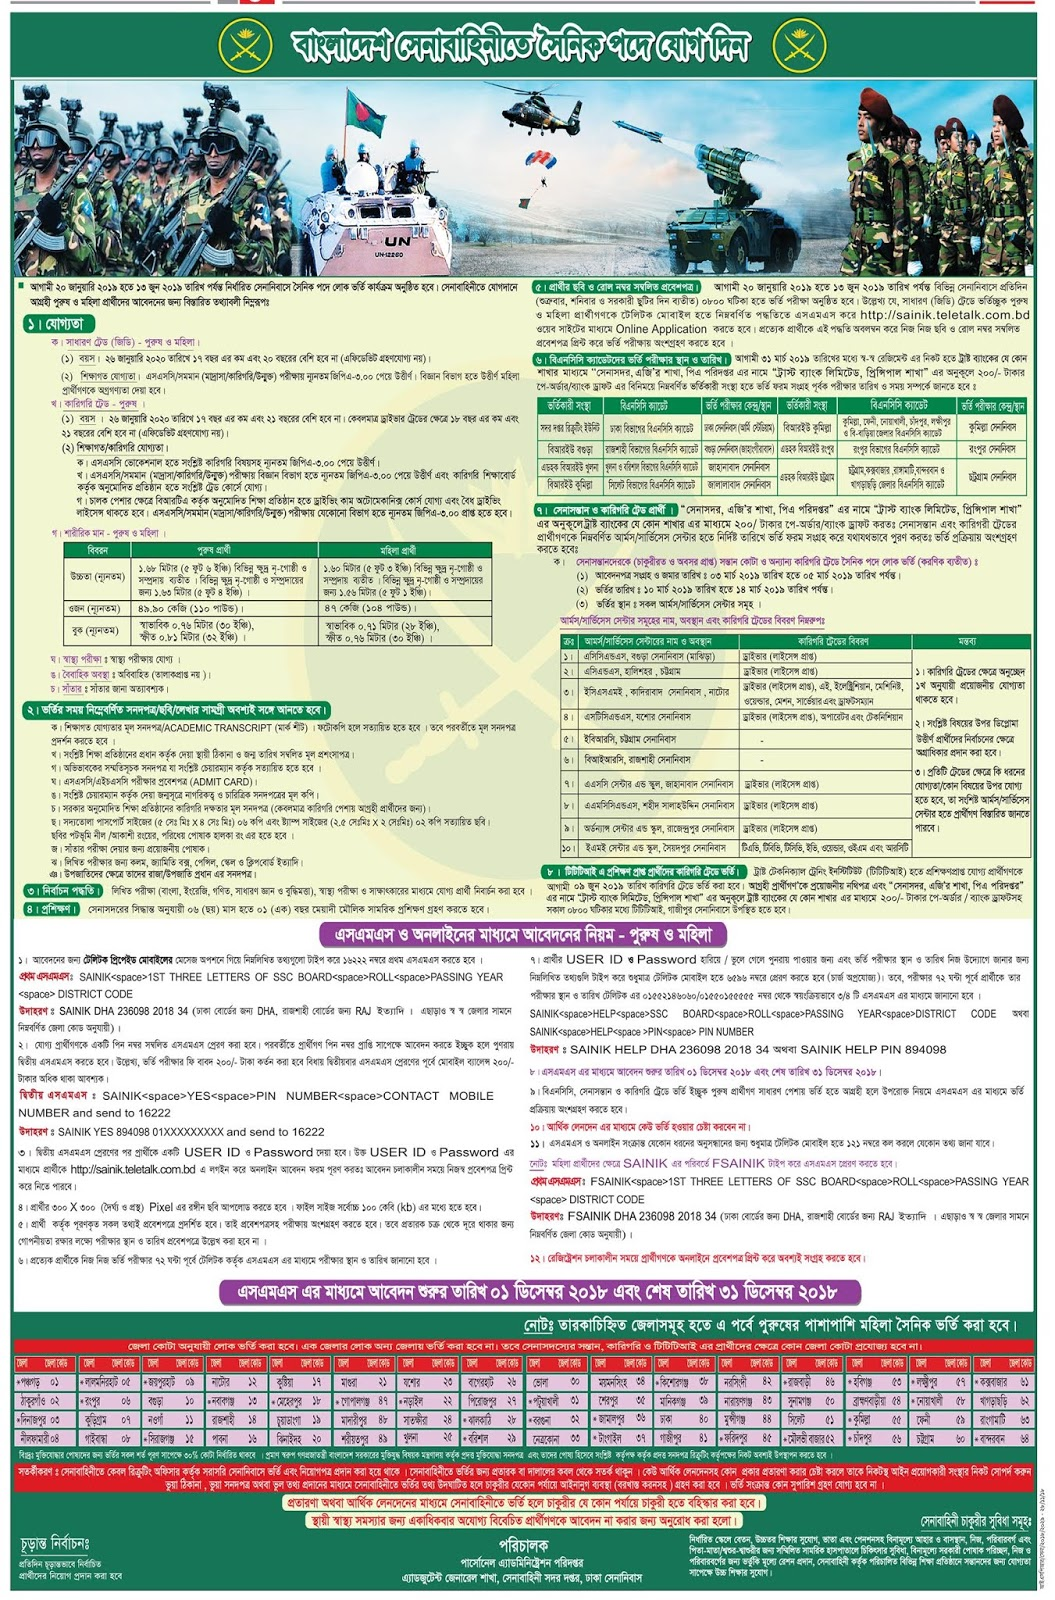 Bangladesh Army Soldier (সৈনিক)  Recruitment Circular 2018